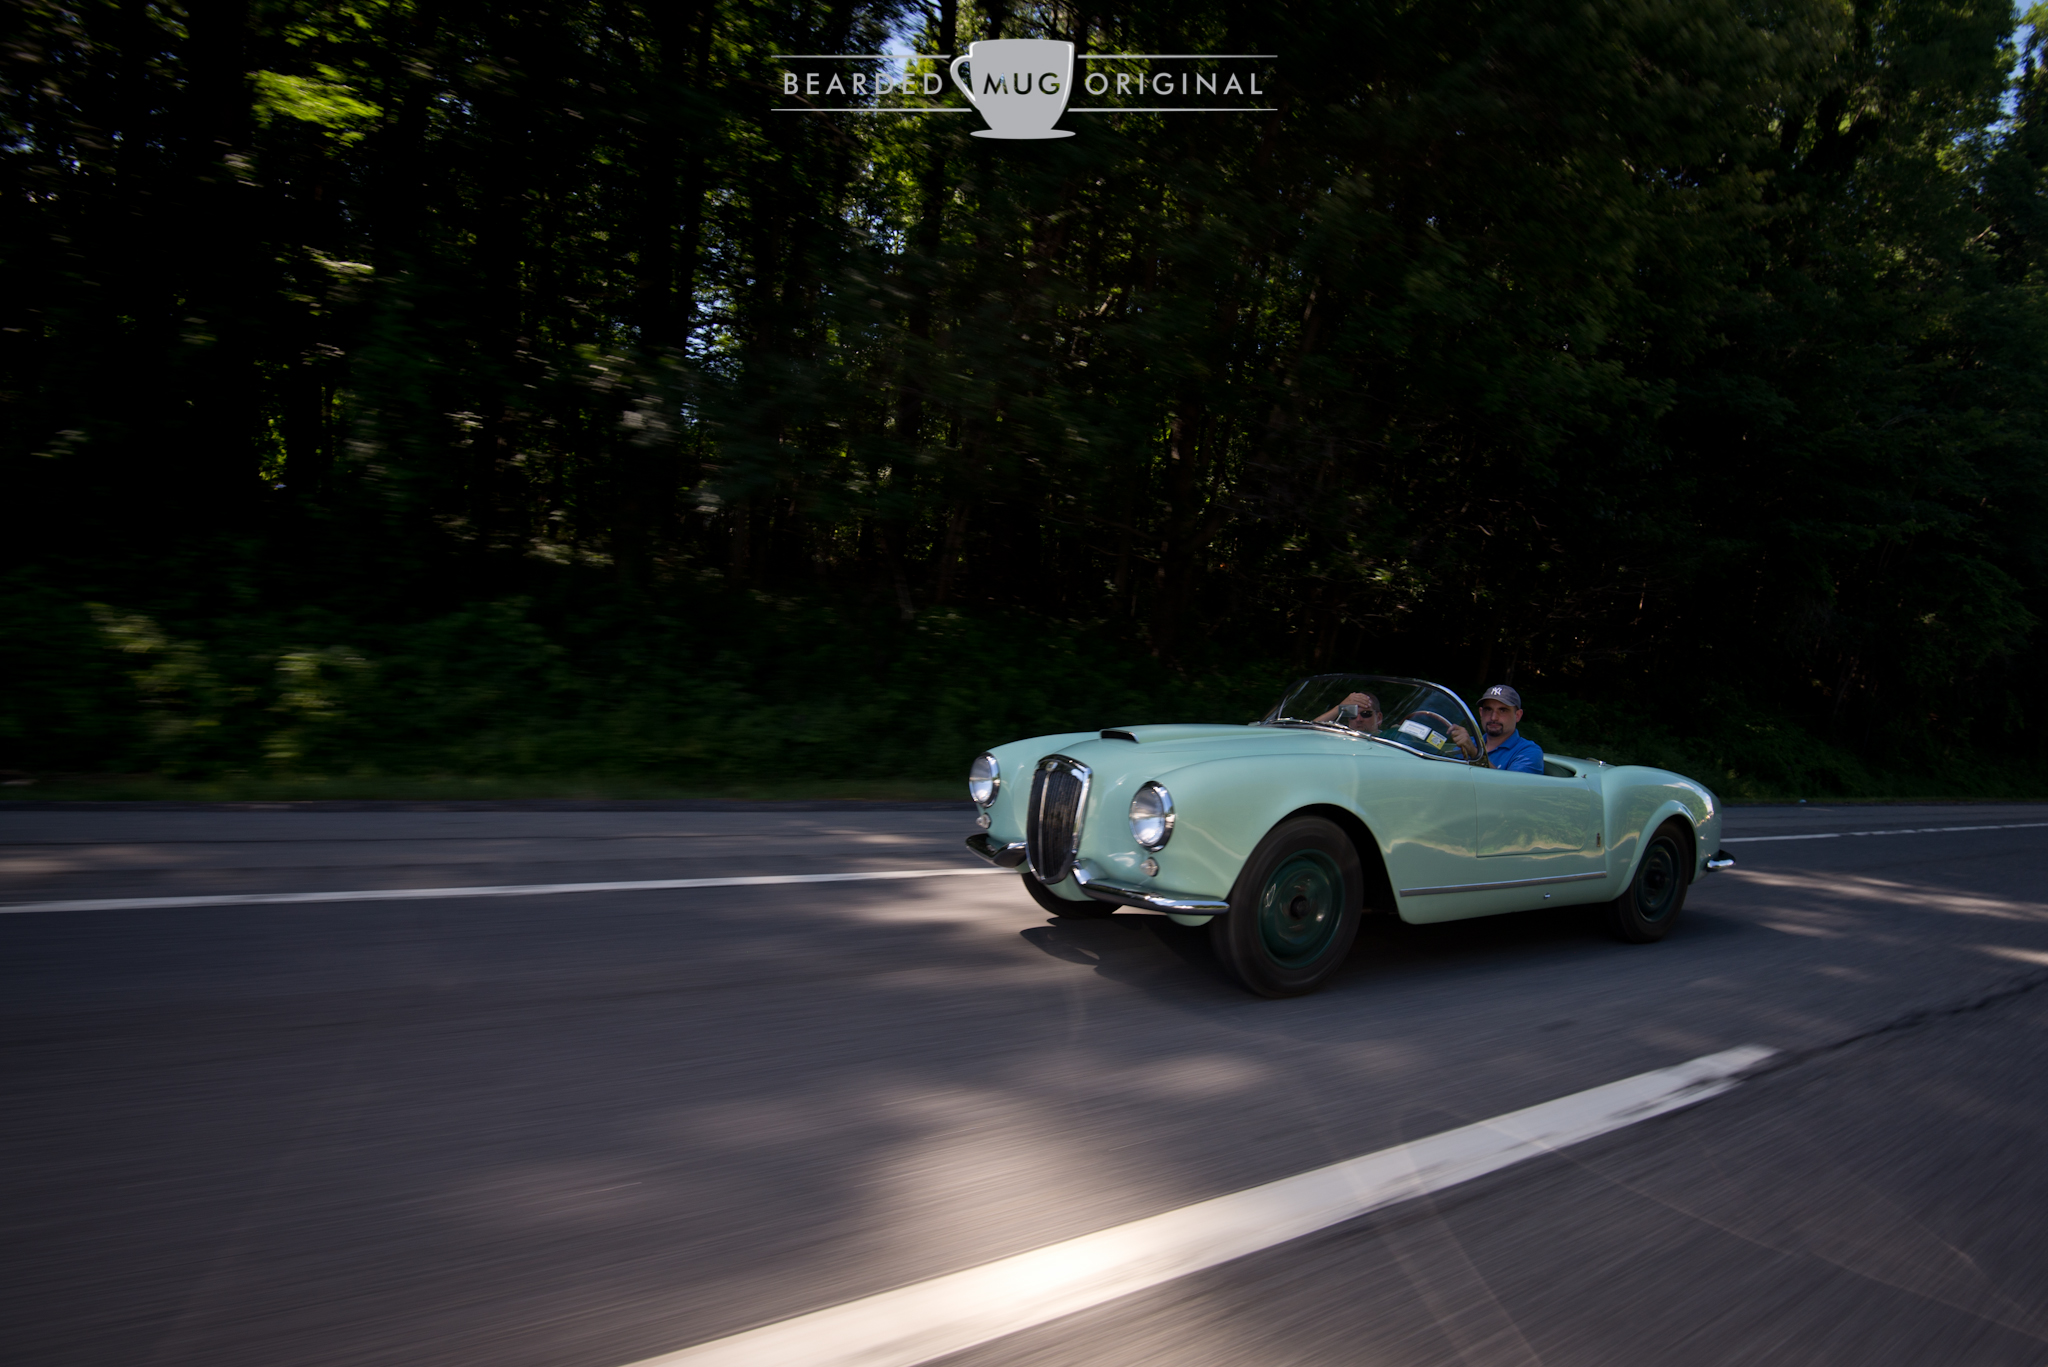 After chatting with the owner of this 1955 Lancia Aurelia Spider at a gas station, I slowed down on the highway to allow him to catch up to capture this shot.